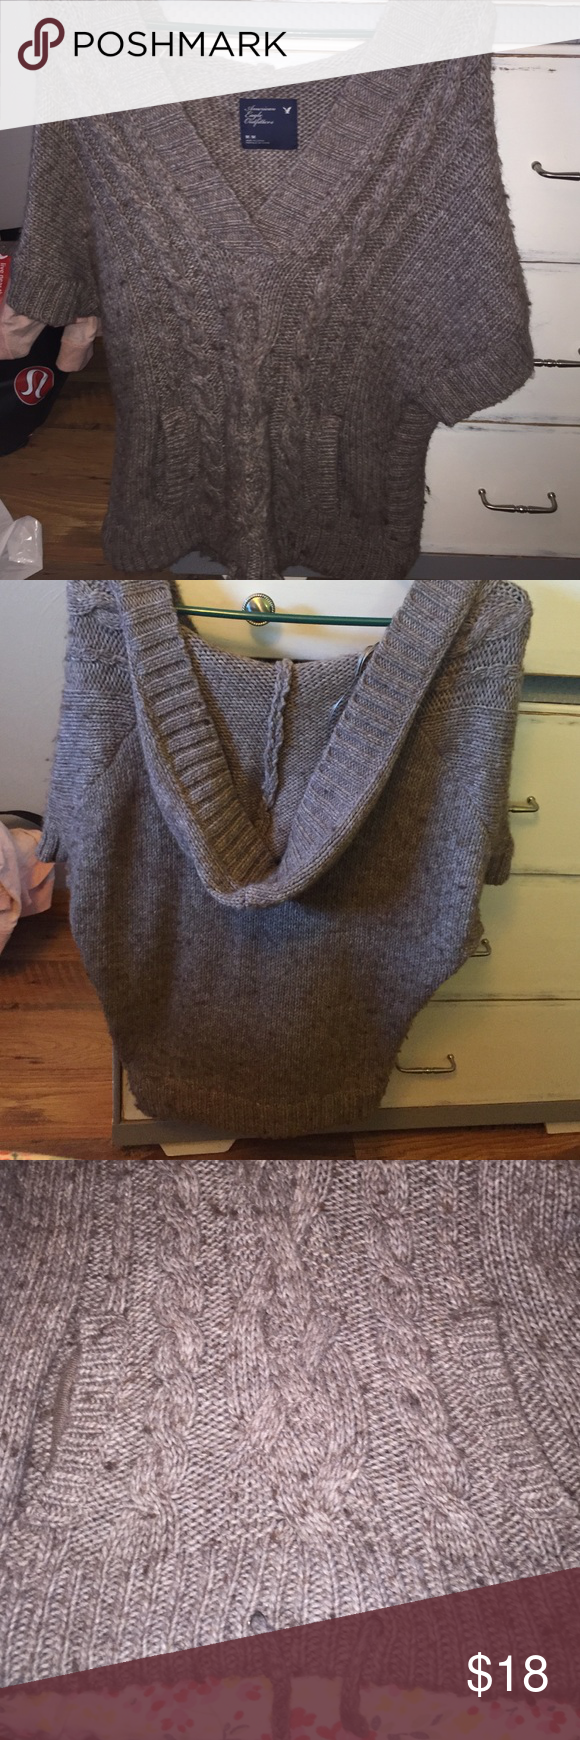 American Eagle Sweater Short Sleeve This is perfect for fall! It's a v-neck sweater but it's short sleeve so it goes perfectly with a plain long sleeve under it. The color is honestly a little confusing, it looks brown but also a little gray. Either way it's so cute and really warm! It has two strings at the bottom you can pull to make the bottom tighter if you want. Also has a hood & a hoodie pocket on it in the front. Get this just in time for fall! Size medium from American Eagle🍁🍃🌾…